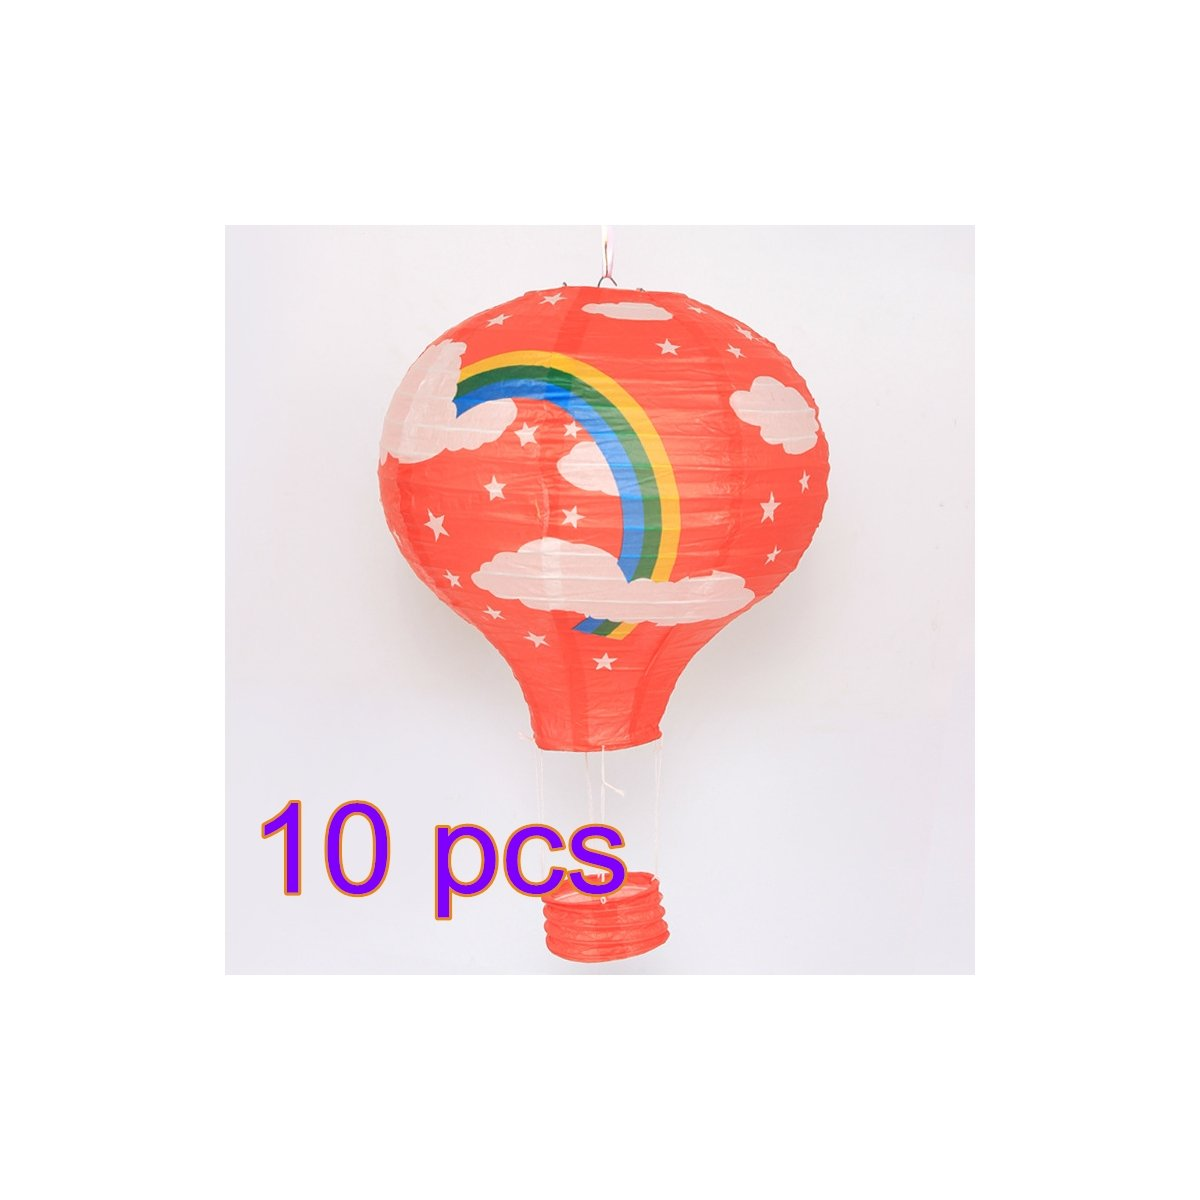 TRIEtree 10ps Hot Air Balloon Paper Lanterns for Christmas Wedding Birthday Party Nursery Decoration Party Decor (Red background Rainbow)